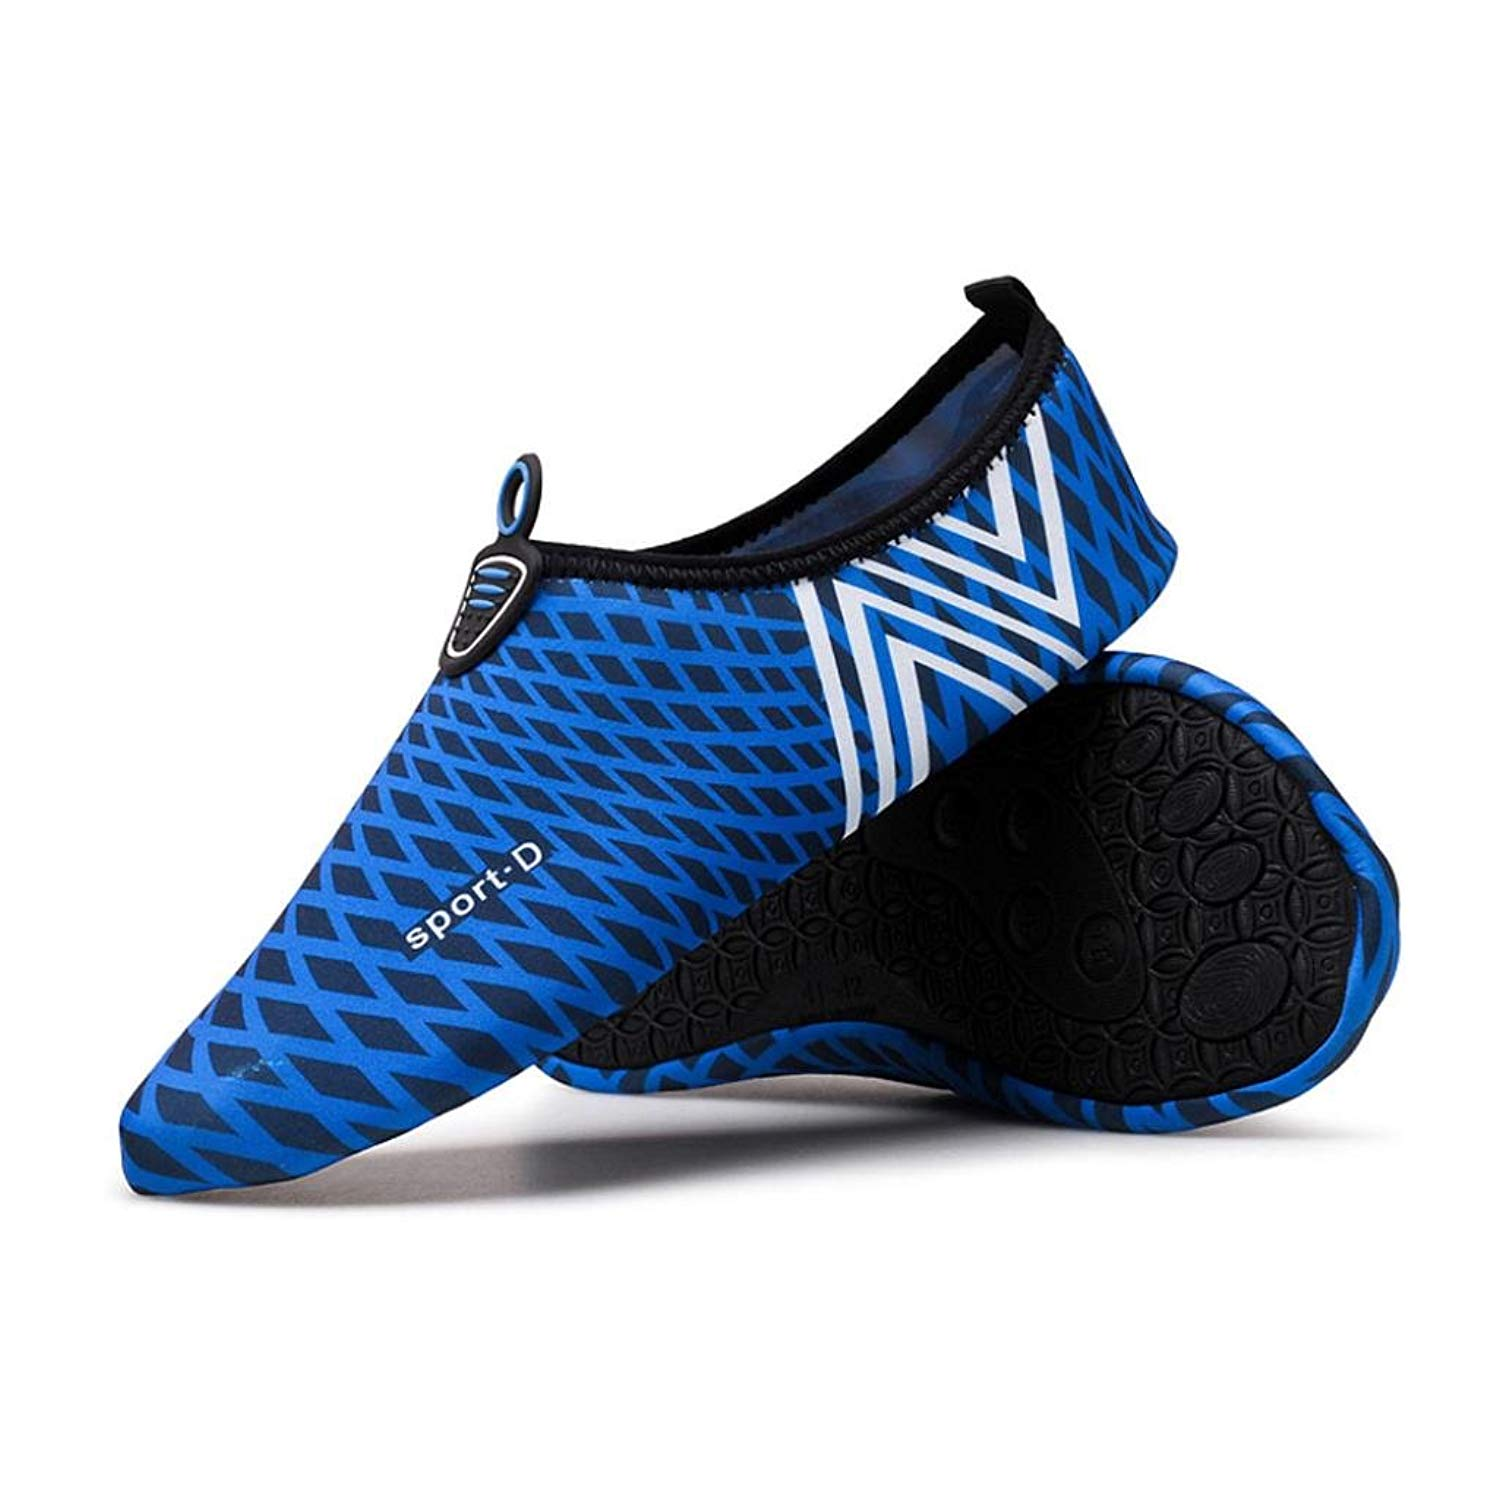 Challyhope Water Shoes Men Women Barefoot Aqua Shoes Quick-Dry for Swim, Surfing Yoga